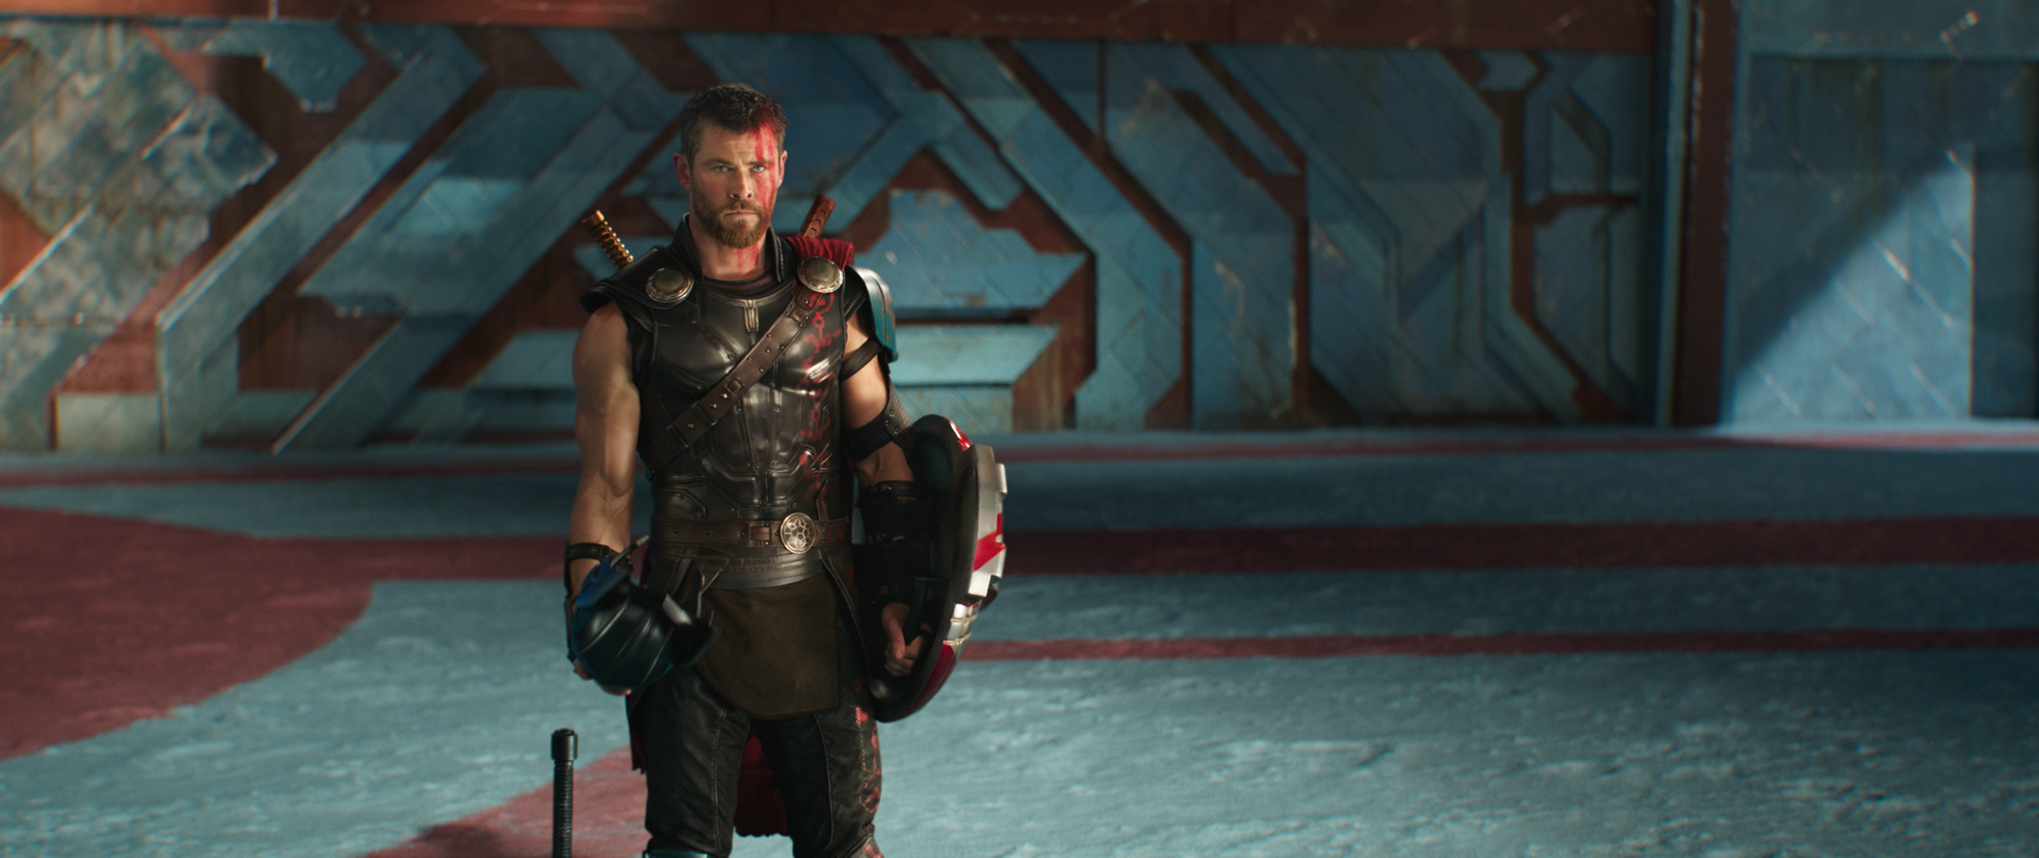 Thor Ragnarok After Credit Scene Explained: Asgardian Ship ... on thor beautiful planet, superman's home planet, spock's home planet, thor's home city, thor's home asgard, cartoon thor home planet,